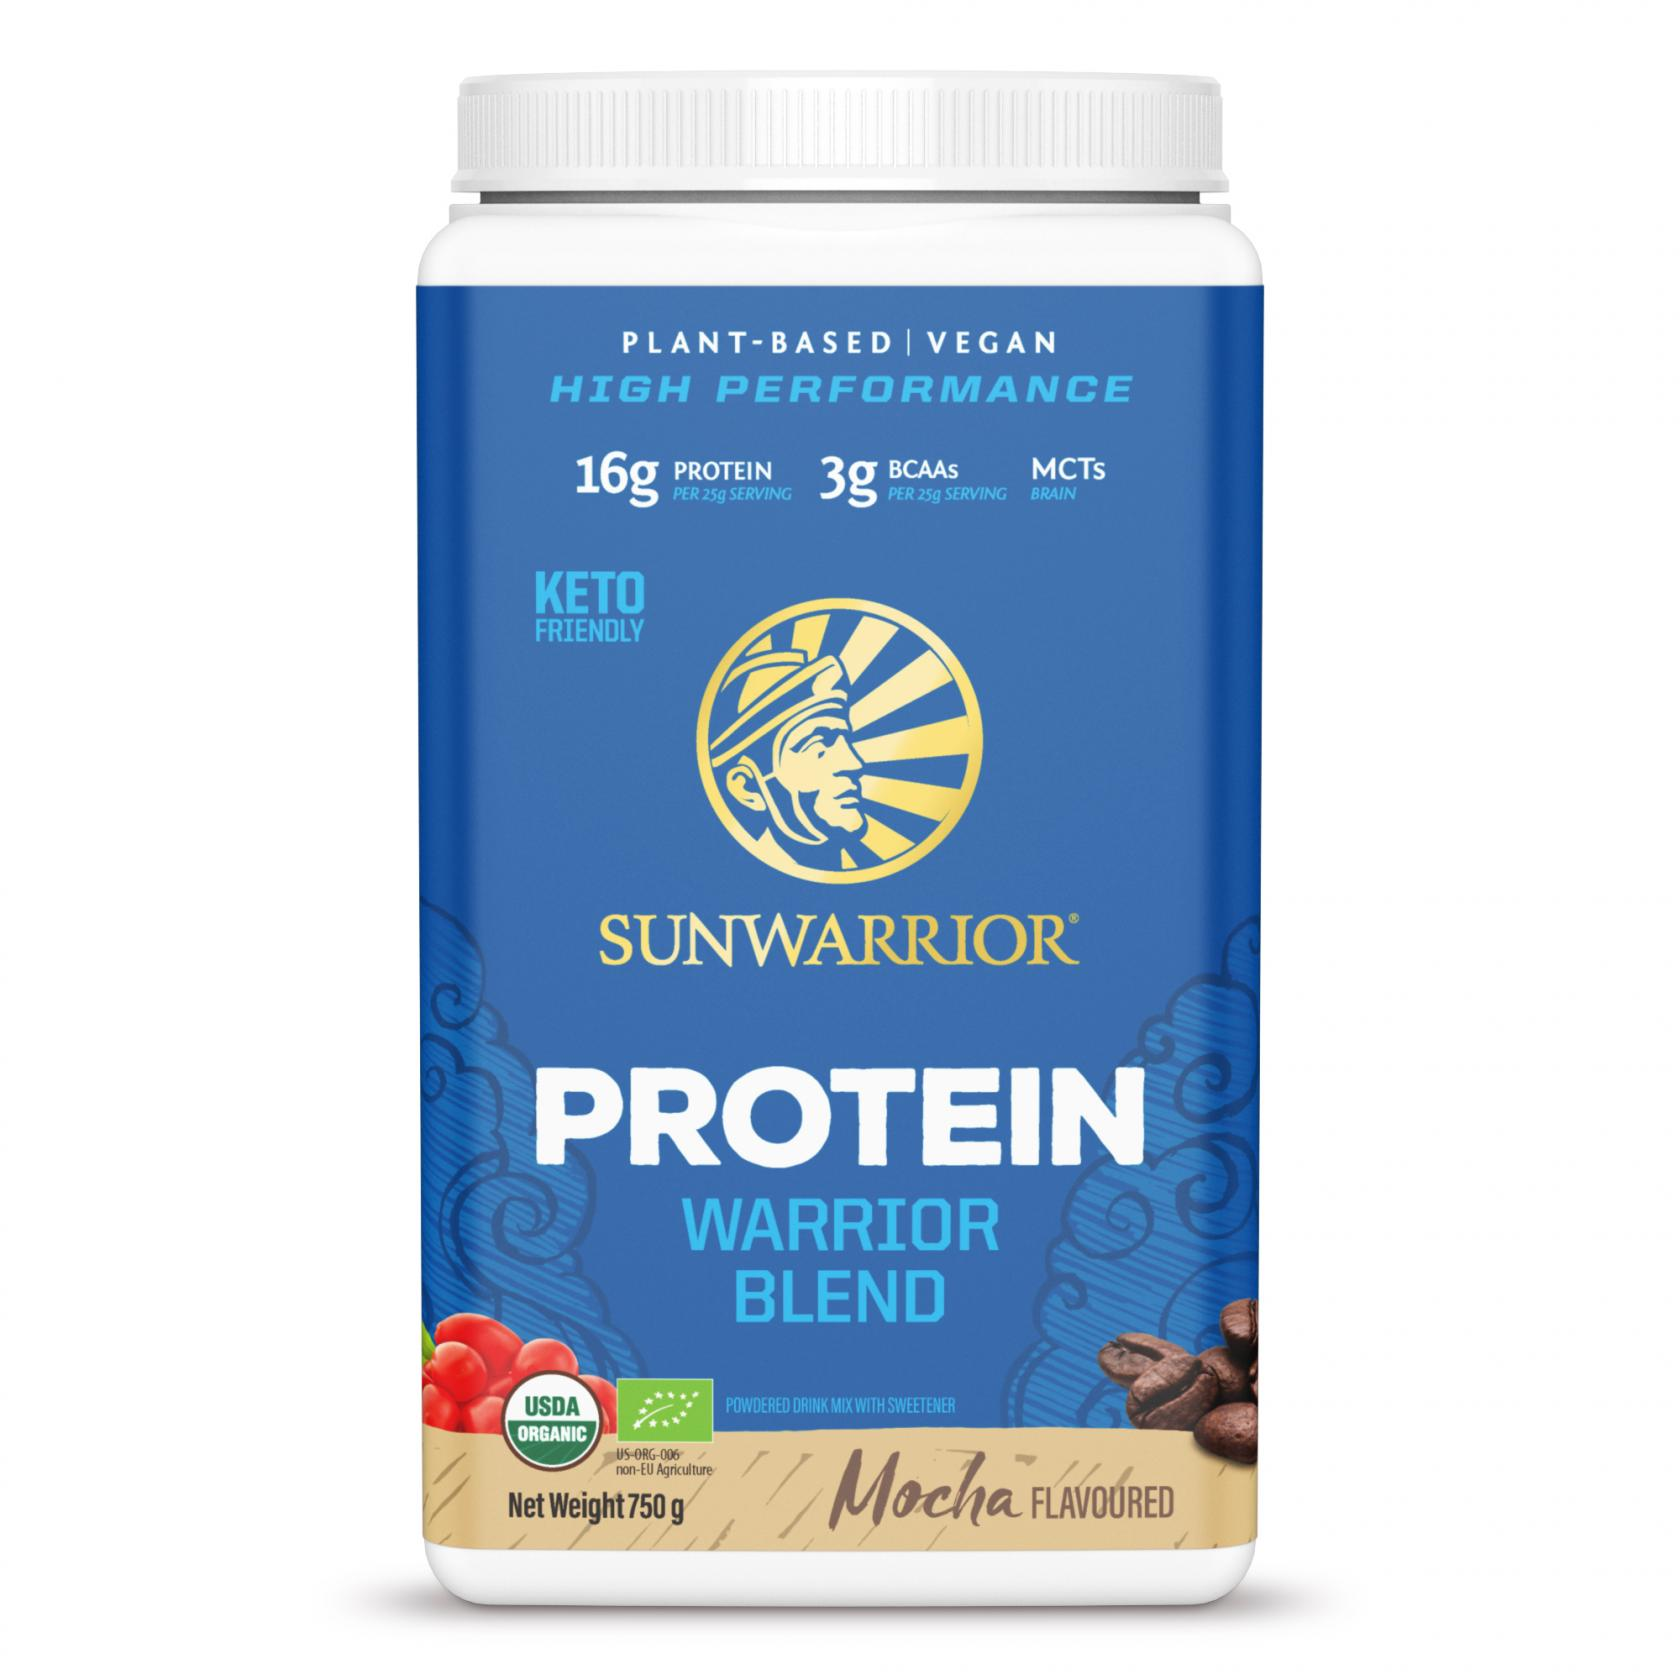 Protein Warrior Blend Mocha 750g (Blue Tub) (Currently Unavailable)